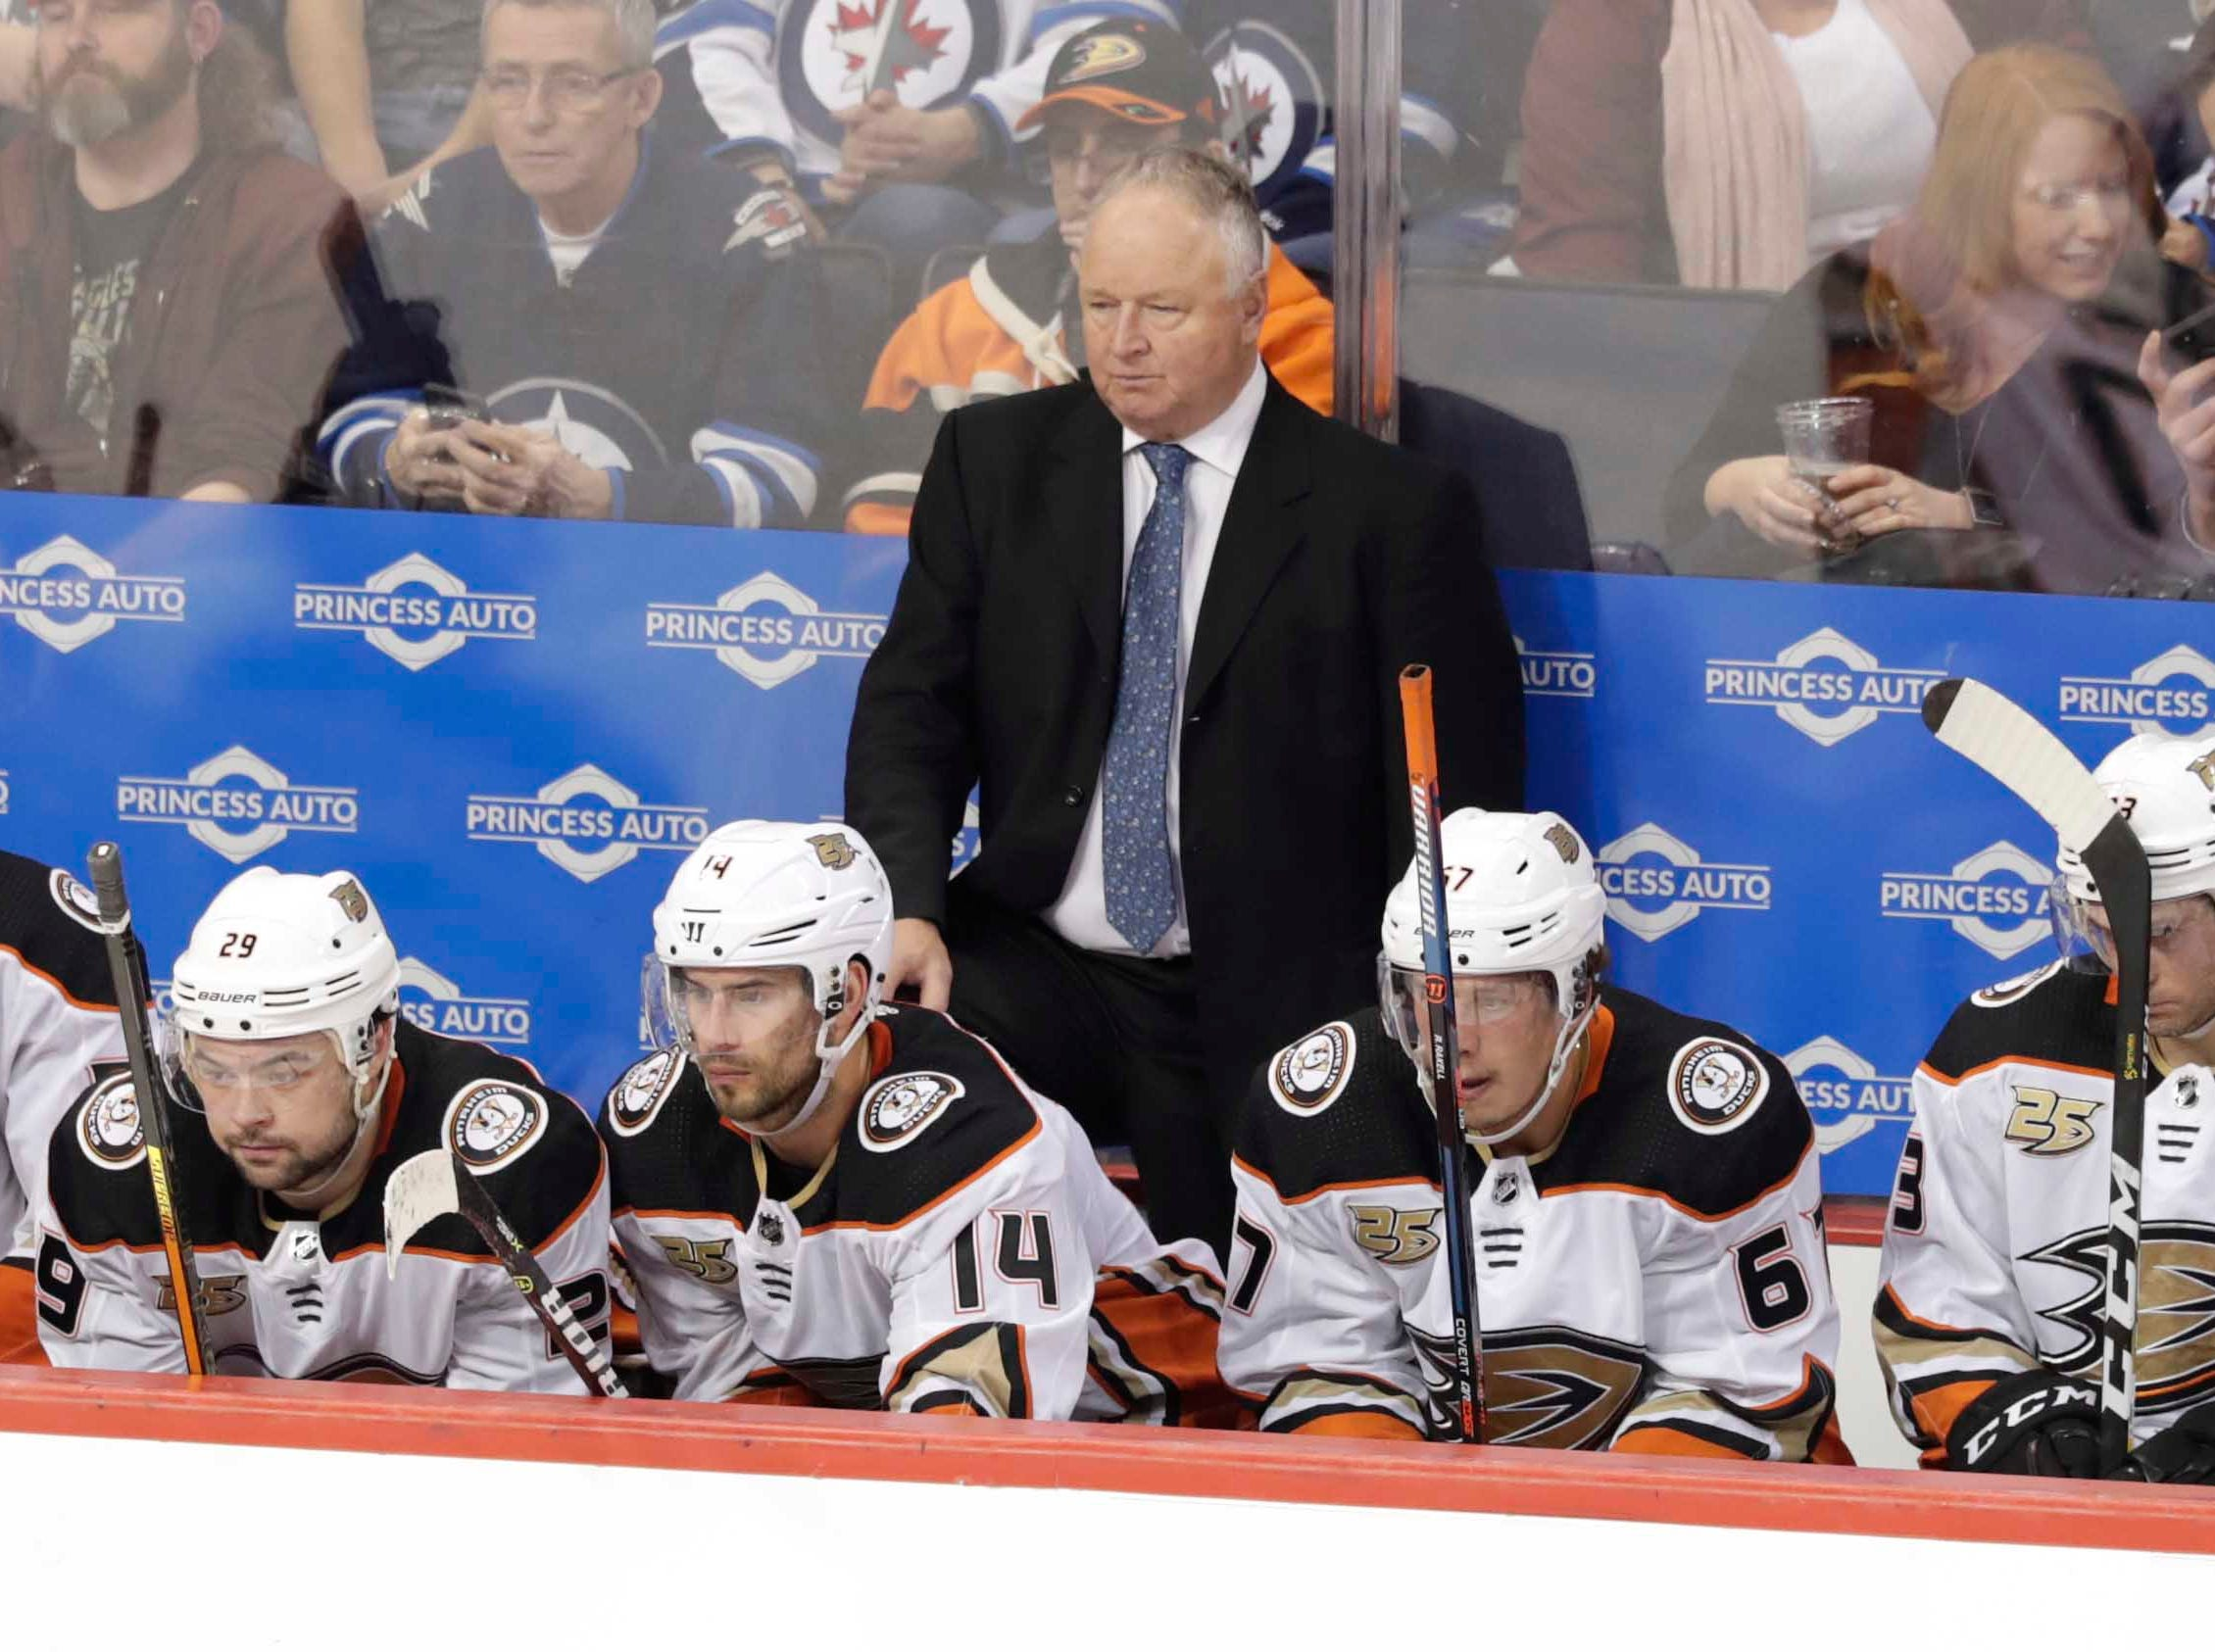 Feb. 2: Anaheim Ducks coach Randy Carlyle looks on against the Winnipeg Jets. His team gave up six first-period goals on the way to a 9-3 loss.